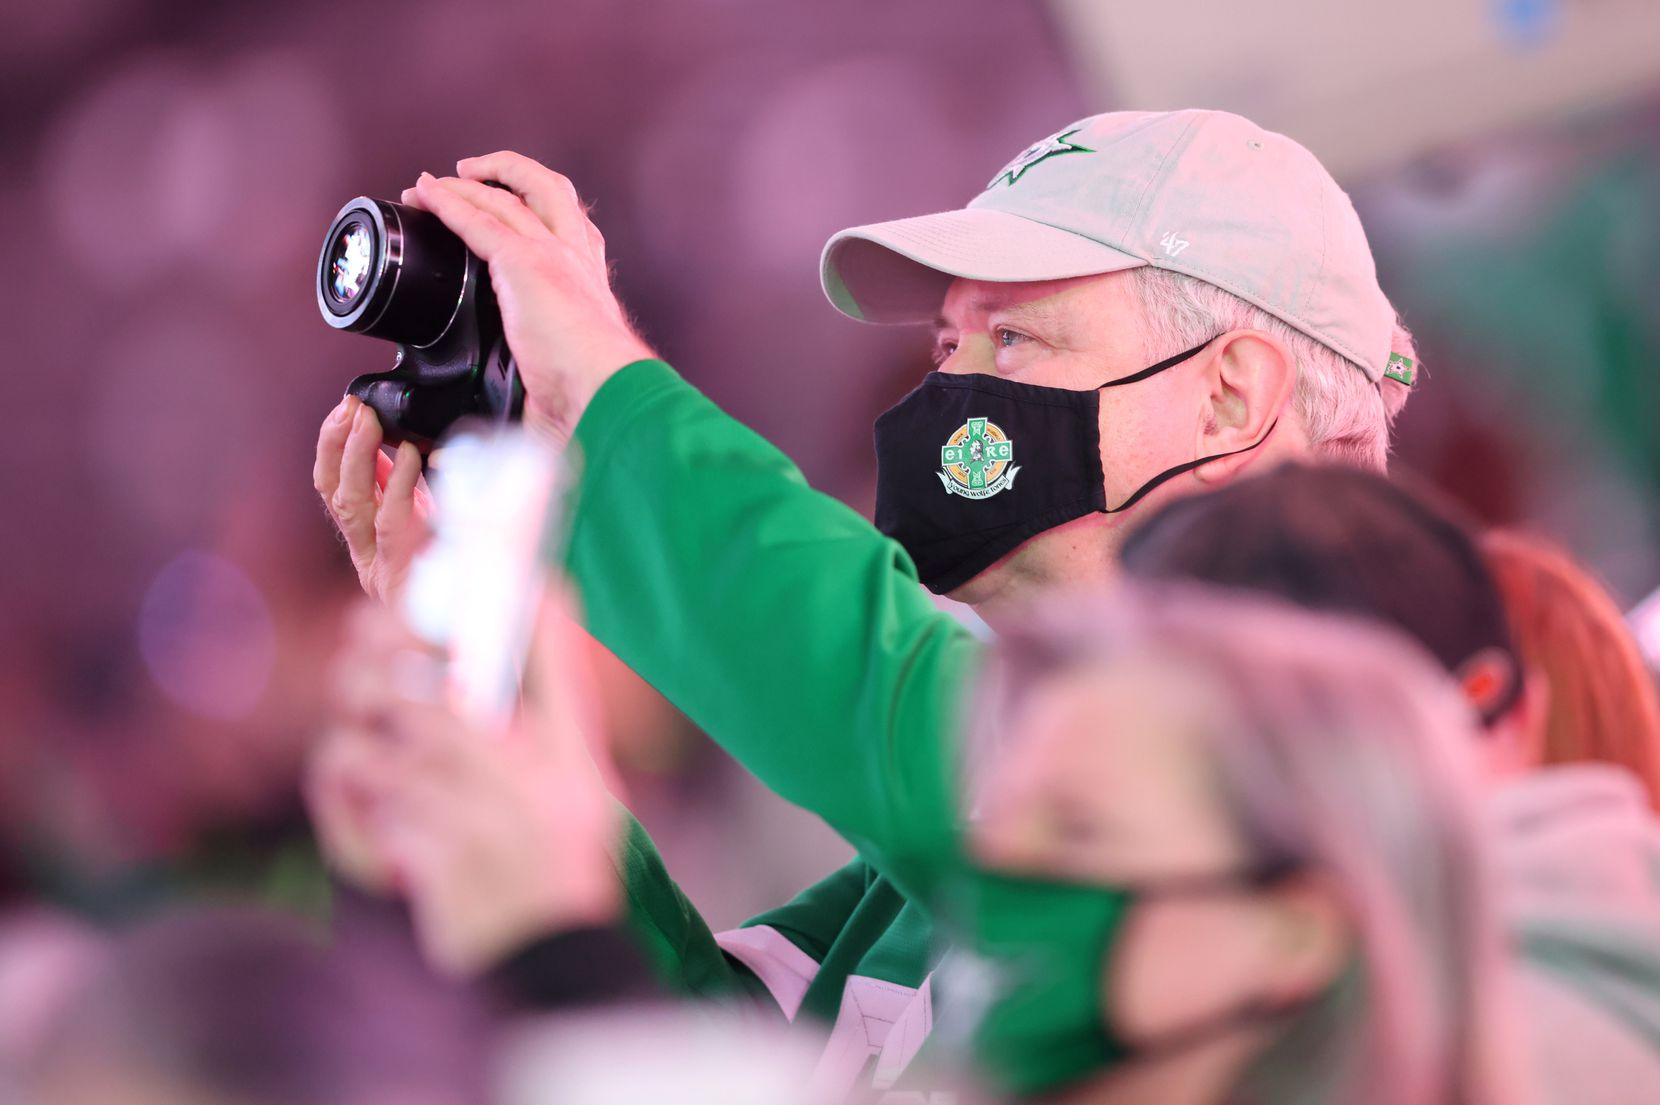 Dallas Stars fans take photos of the Western Conference Champions banner prior to the start of a game against the Nashville Predators in the Stars home opener at American Airlines Center on Friday, January 22, 2021in Dallas. (Vernon Bryant/The Dallas Morning News)